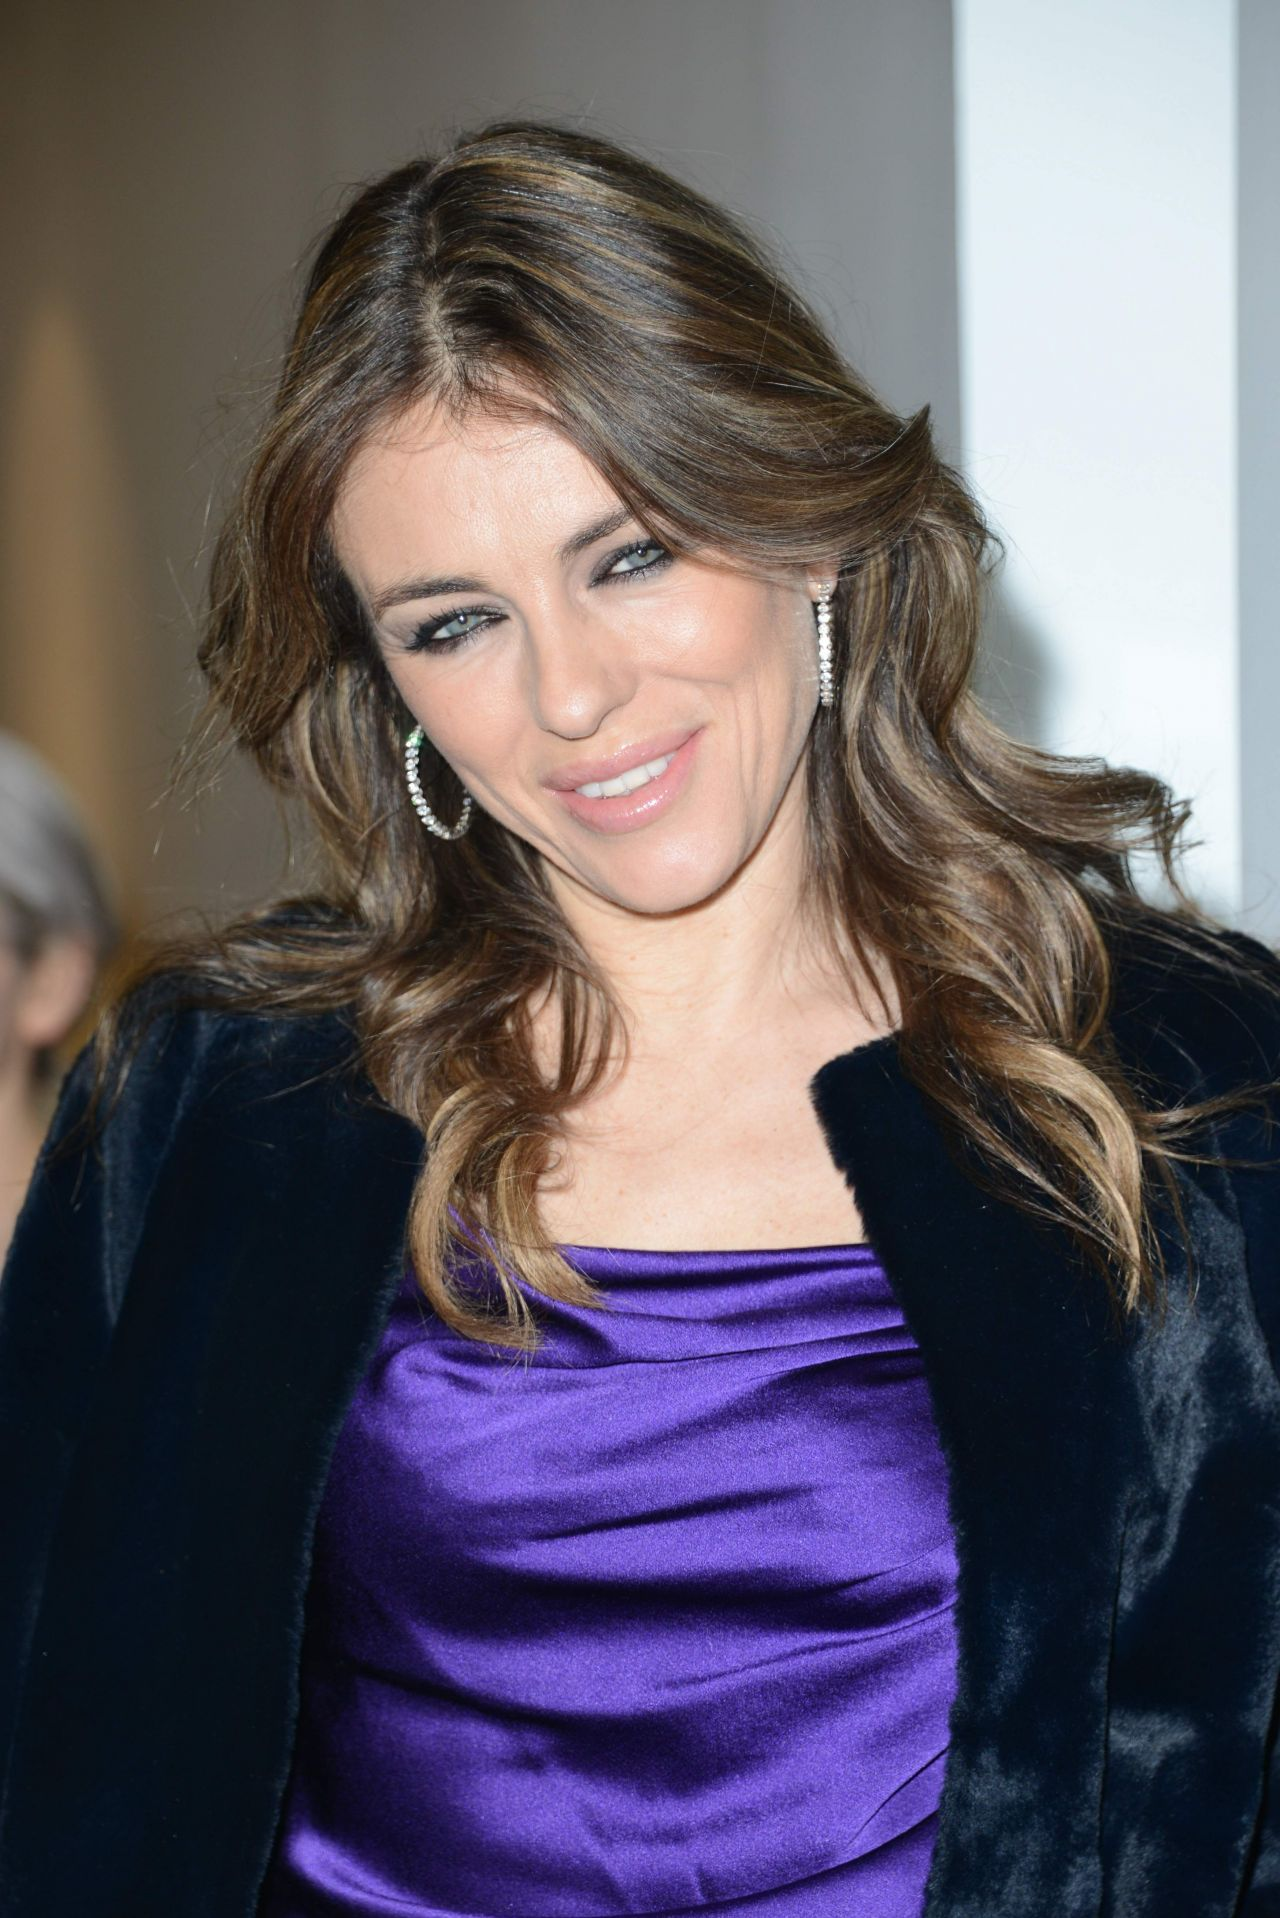 Elizabeth Hurley - Launch of Amanda Wakeley Flagship Store in London - January 2014